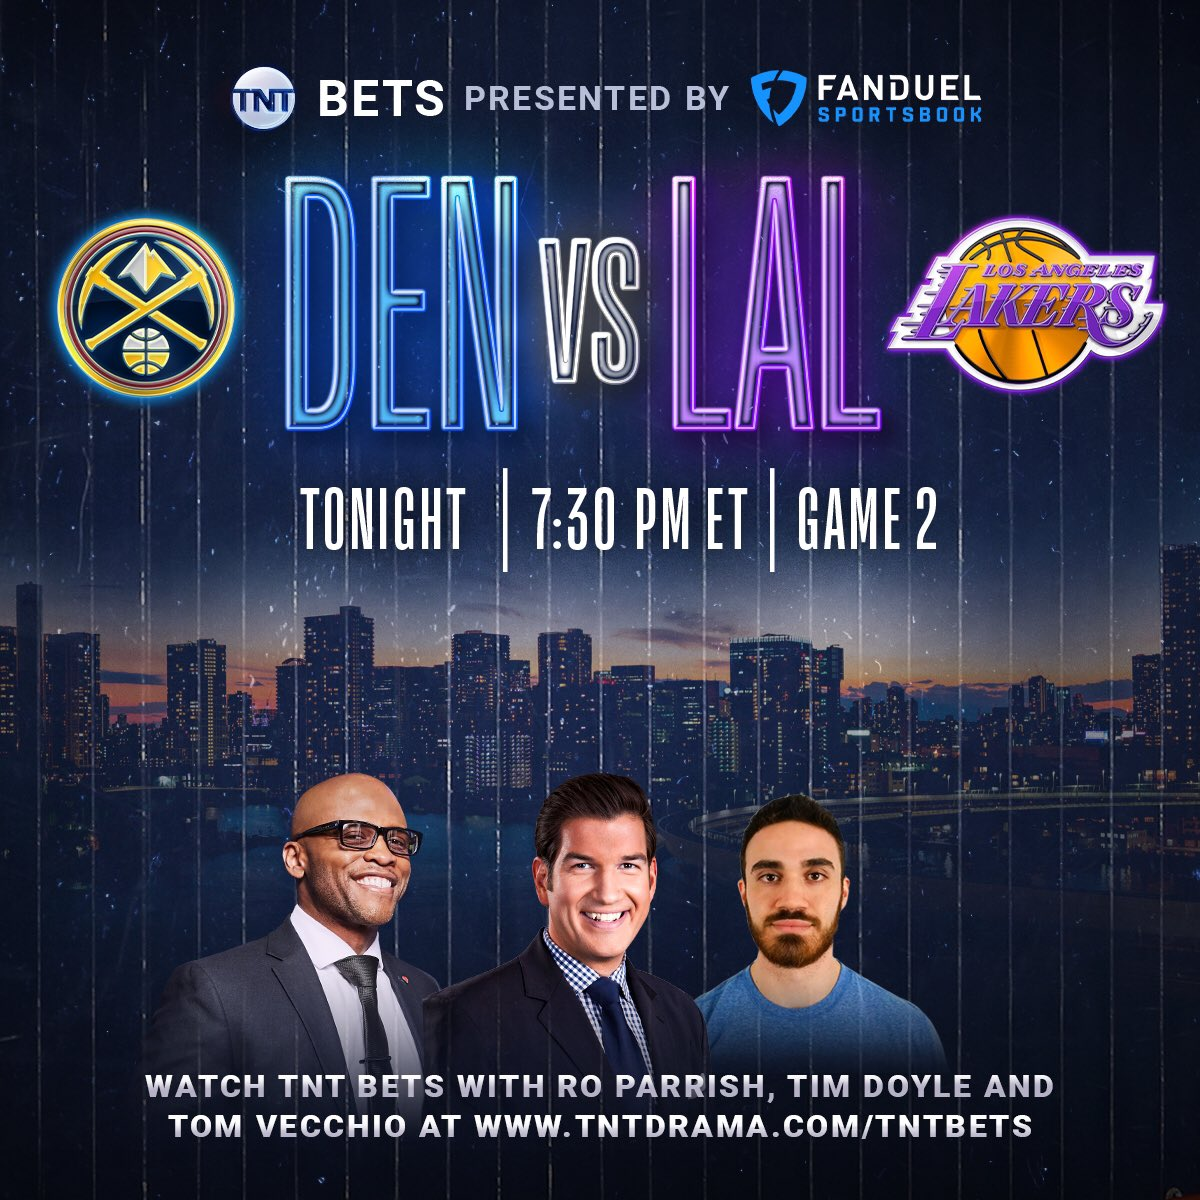 TNT Bets Simulcast will be live for every WCF game 🤑  @RoParrish @DFS_Tom and myself will present alternate commentary centered around betting analysis and odds in partnership with @FDSportsbook during the WCF. Tune in for LAL-DEN Game 2 tonight at 730pm: https://t.co/pKgHzCp51y https://t.co/S4eCgZ0XON